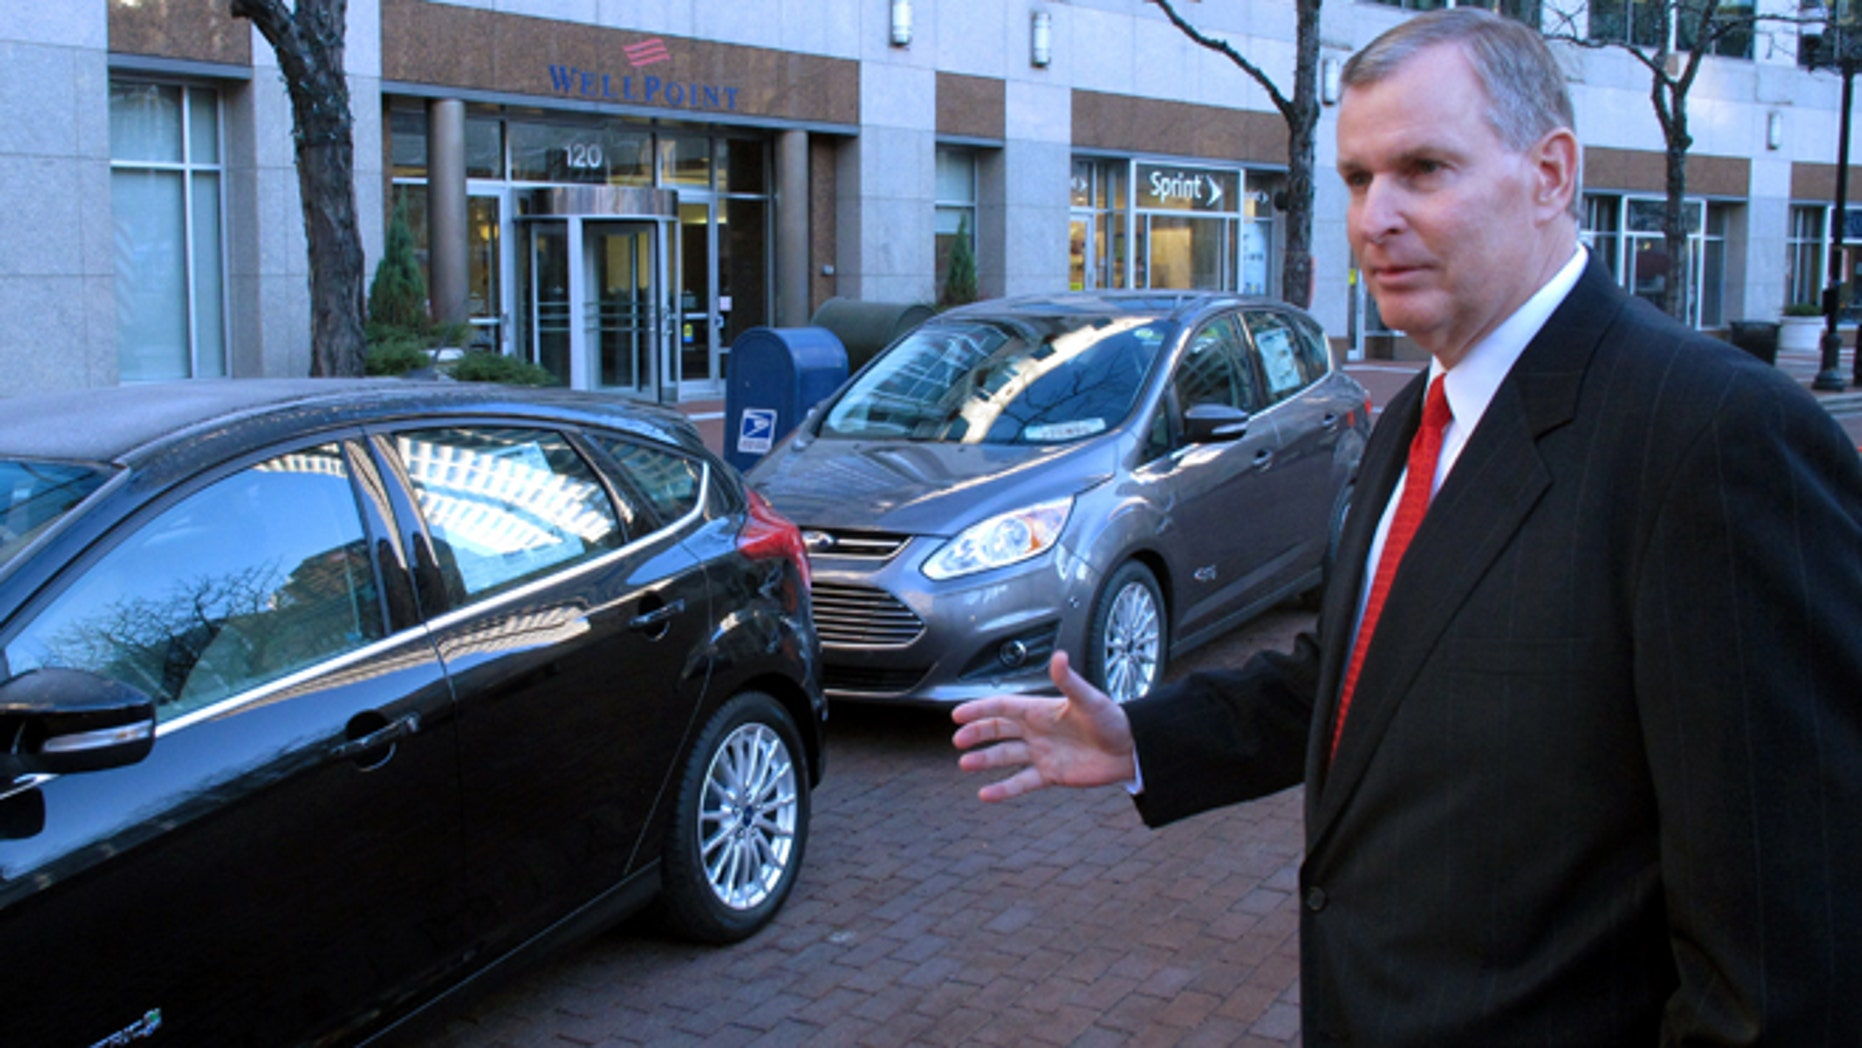 Indianapolis Mayor Greg Ballard talks about replacing it's fleet of cars with electric and plug-in hybrids like these shown following an announcement in Indianapolis, Wednesday, Dec. 12, 2012. Indianapolis plans to replace its entire fleet with electric and plug-in hybrid vehicles by 2025.  (AP Photo/Rick Callahan)